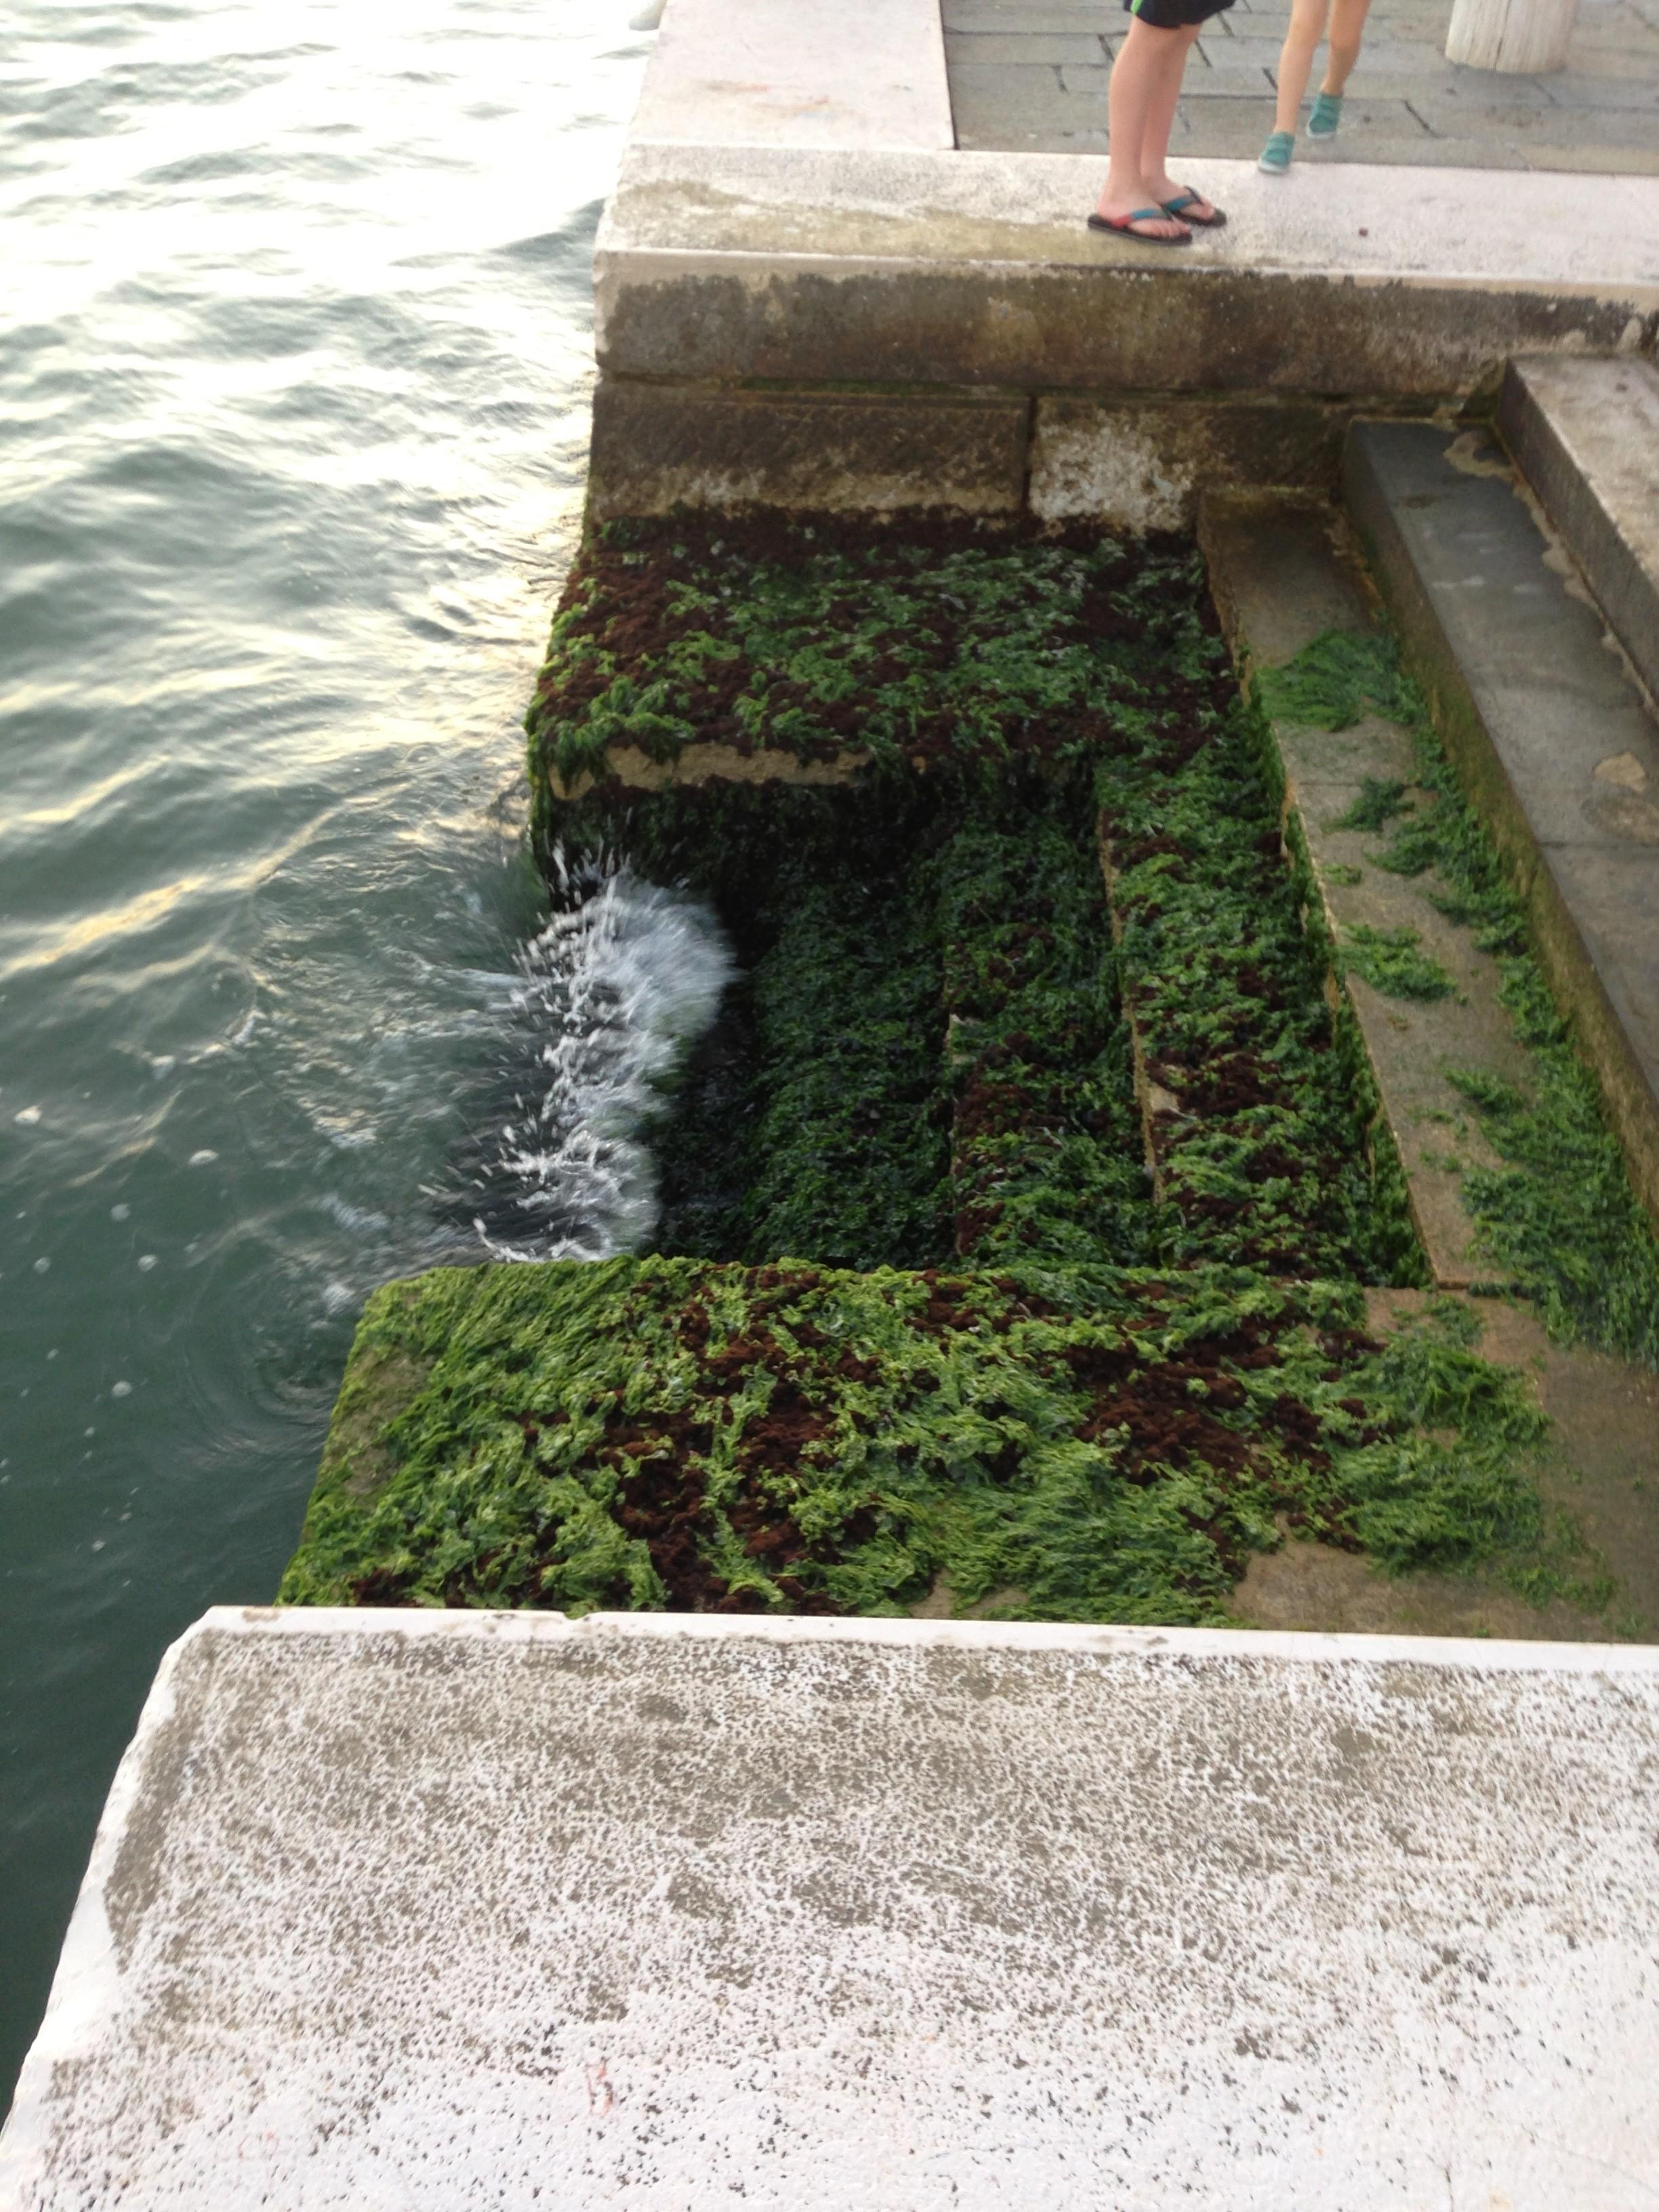 Moss covered steps in the sinking city of Venice.